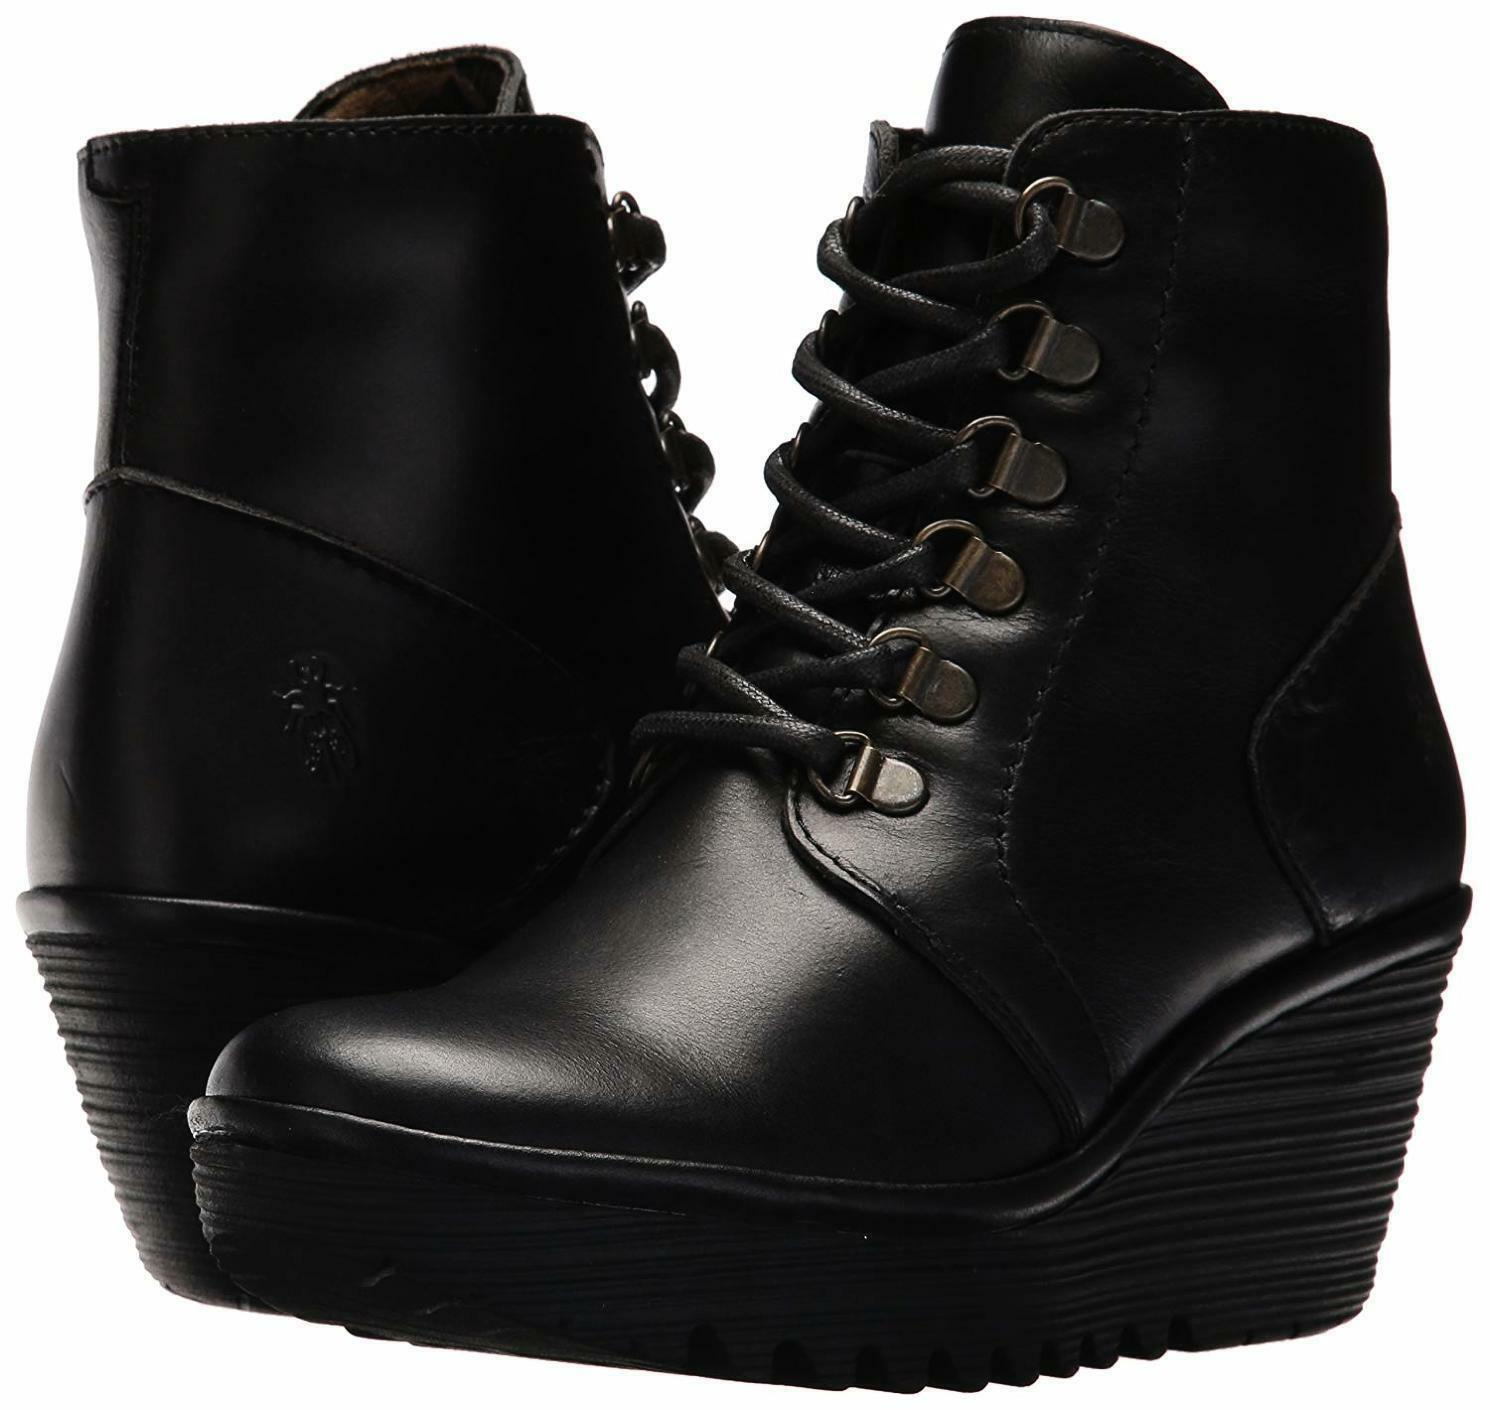 FLY LONDON YARN772FLY BLACK LEATHER WEDGE ANKLE BOOTS UK 8 EUR 41 BNIB